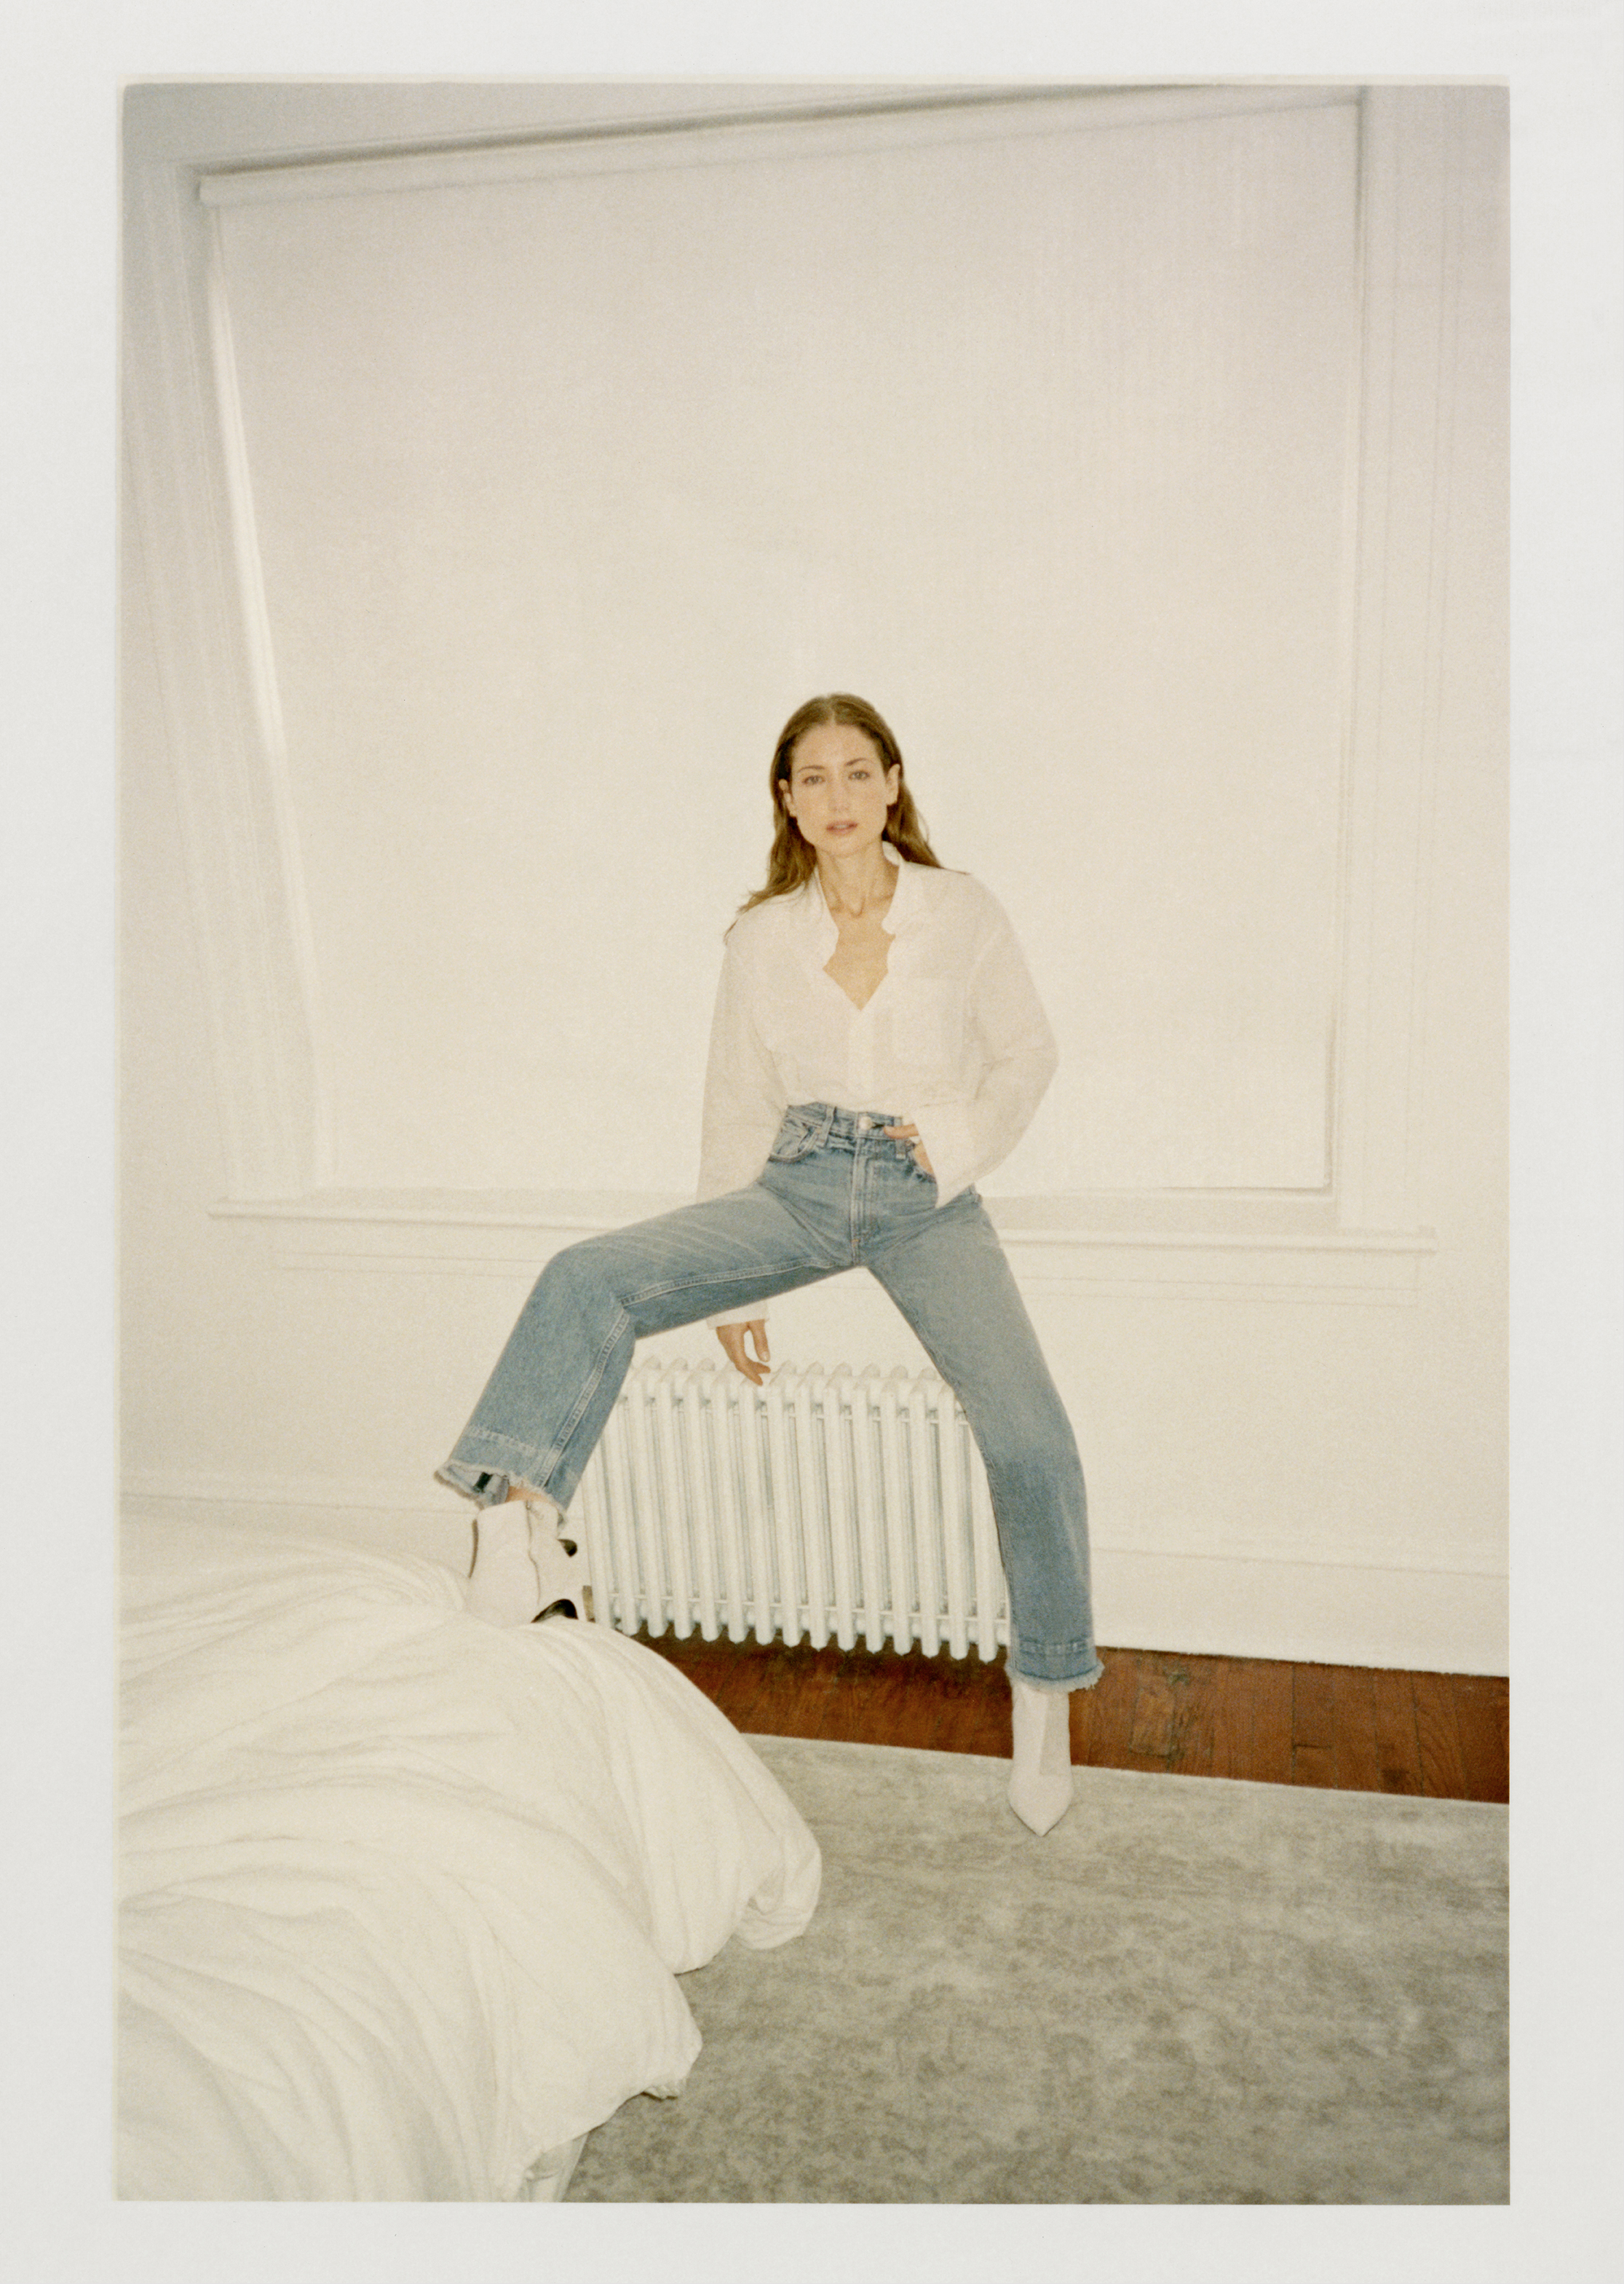 Rag & Bone Announces New Monthly Photo Project